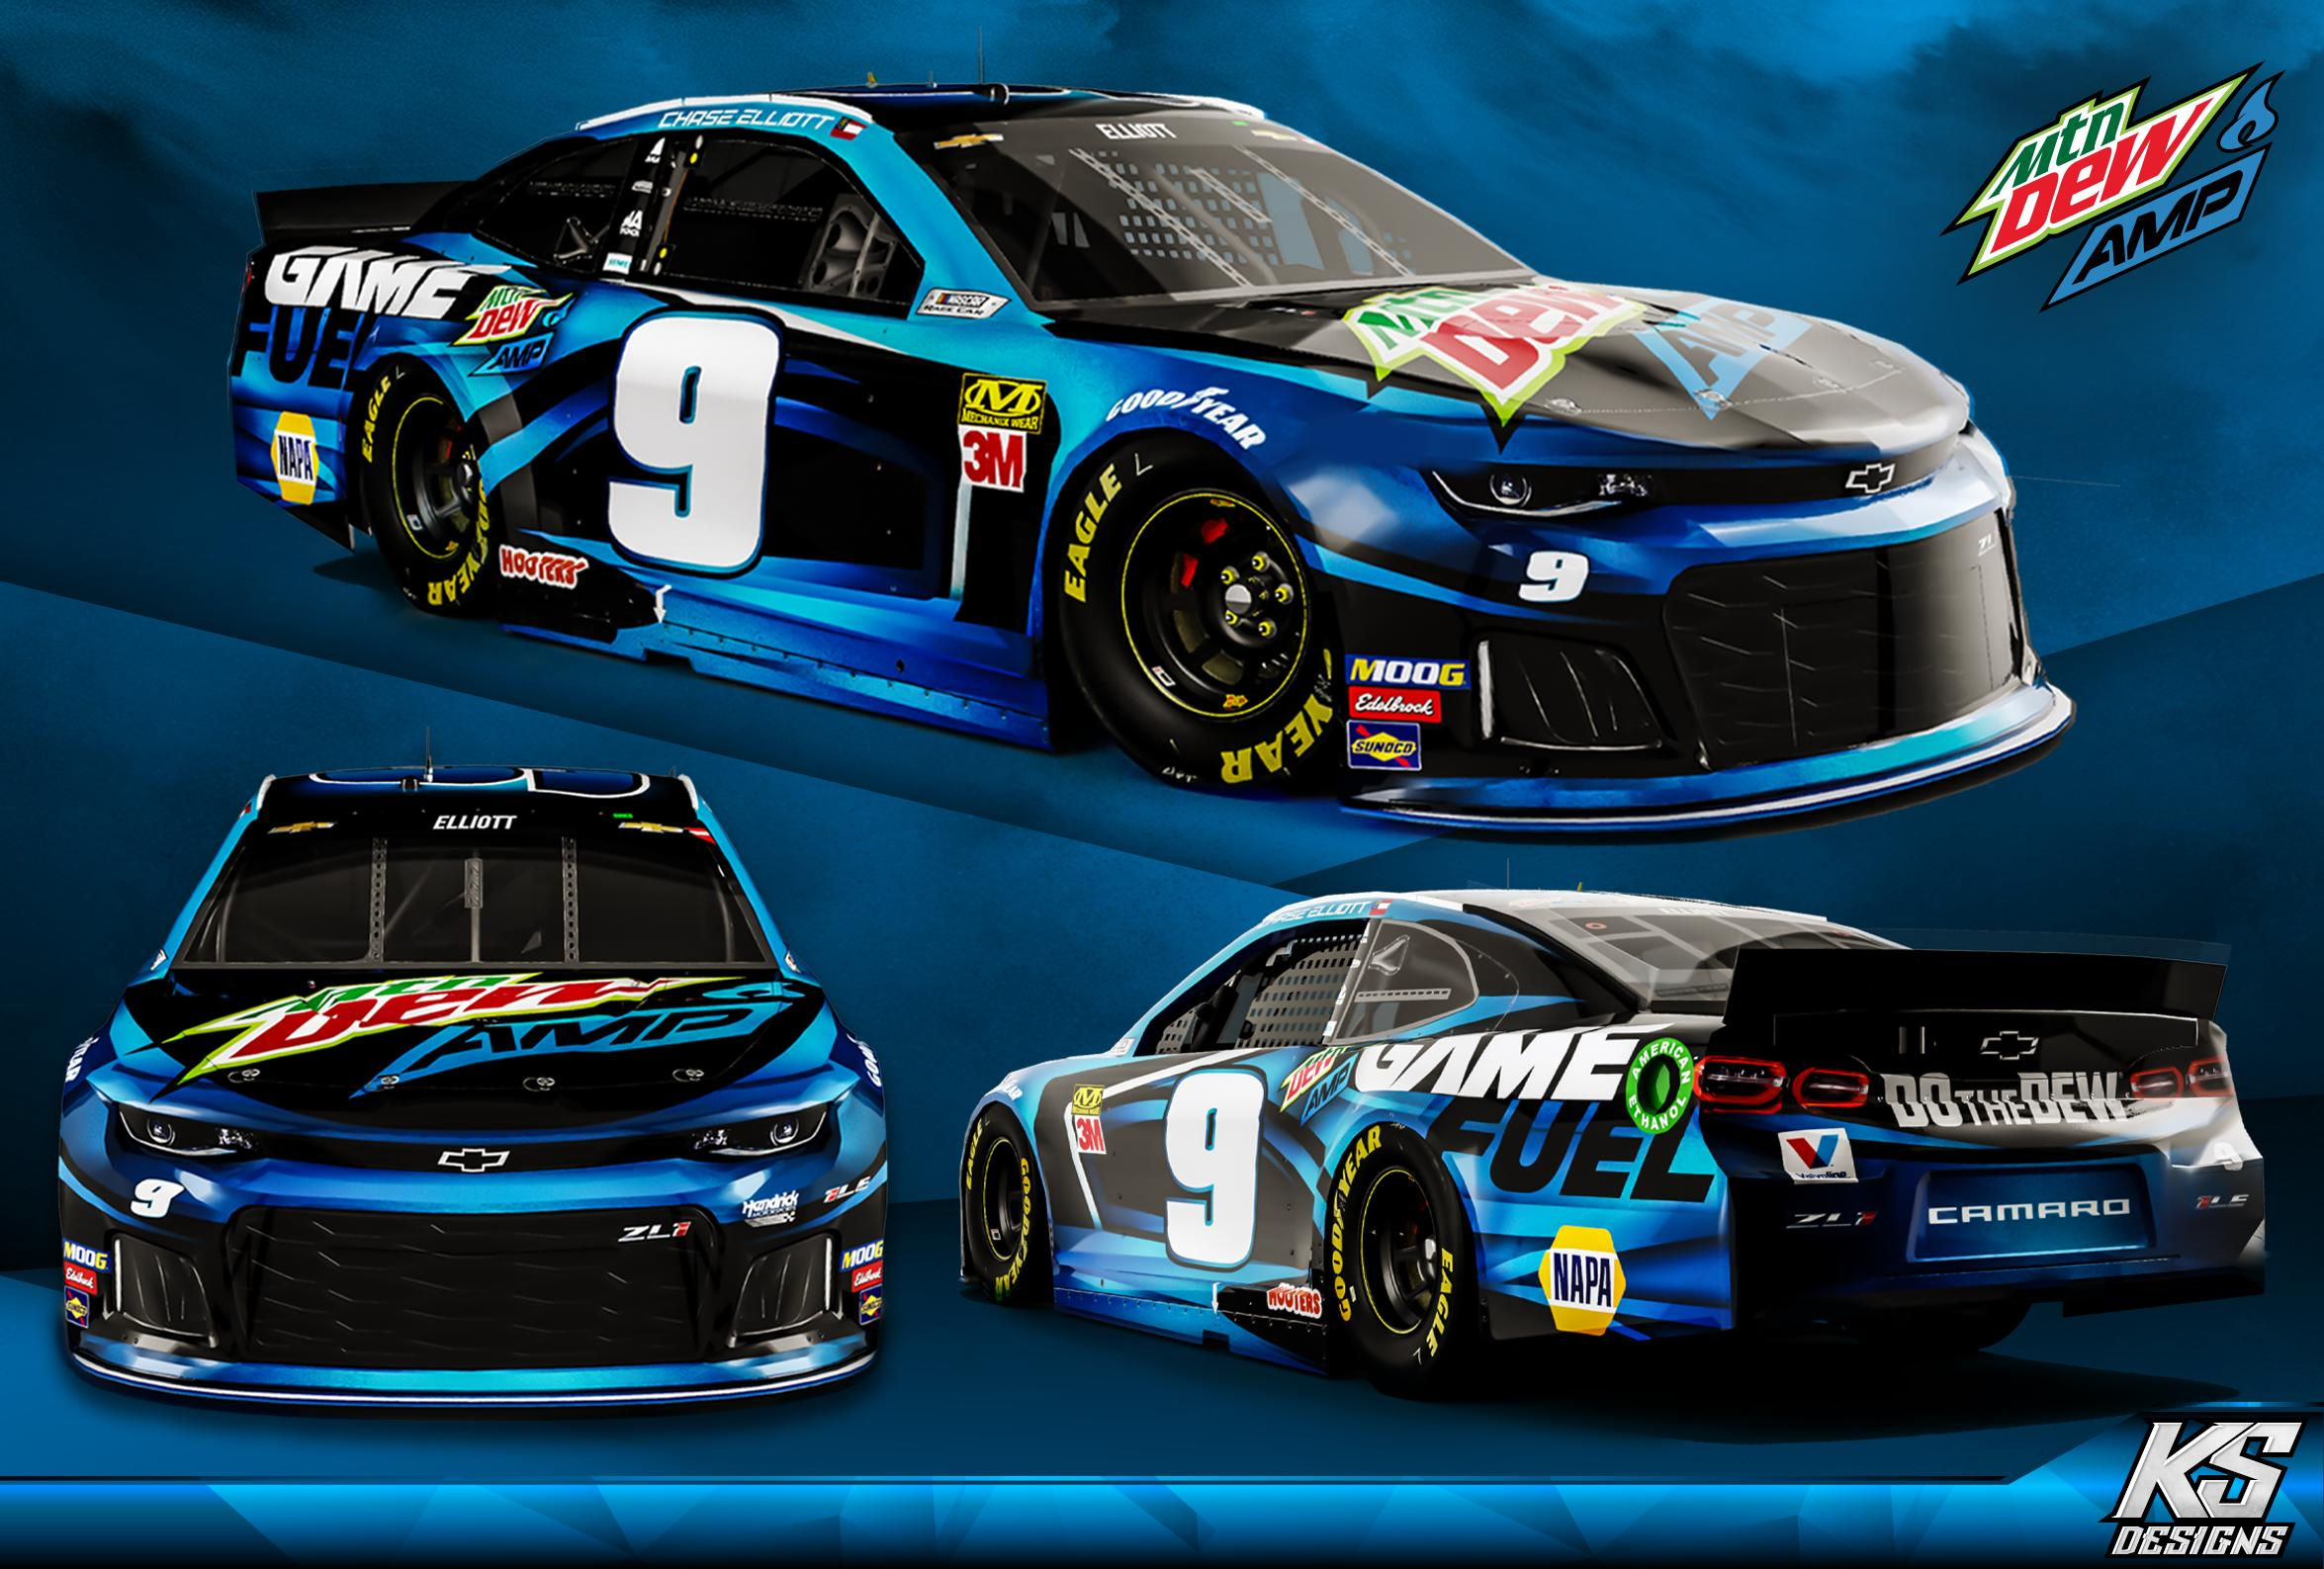 Preview of Chase Elliott Game Fuel | Mtn Dew Amp concept - Blue by Kyle Sykes